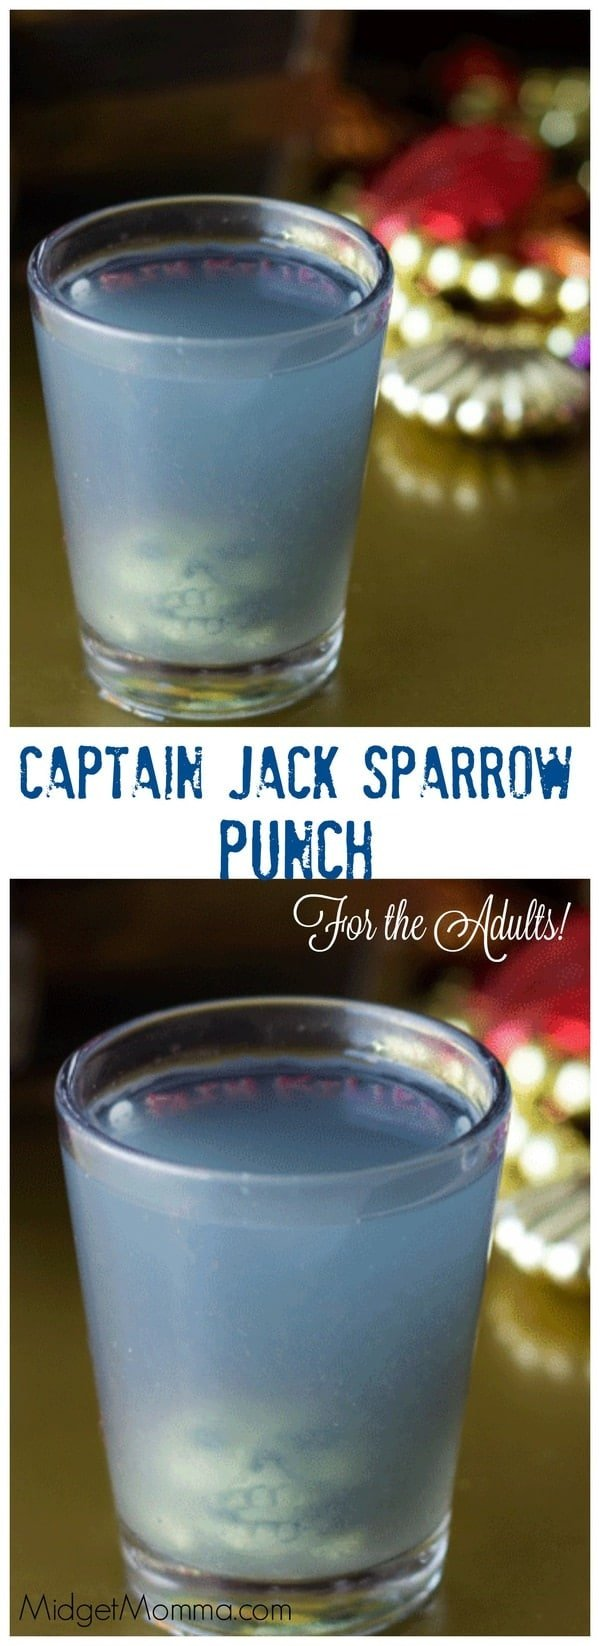 Halloween Alcoholic Punch Drink Recipes